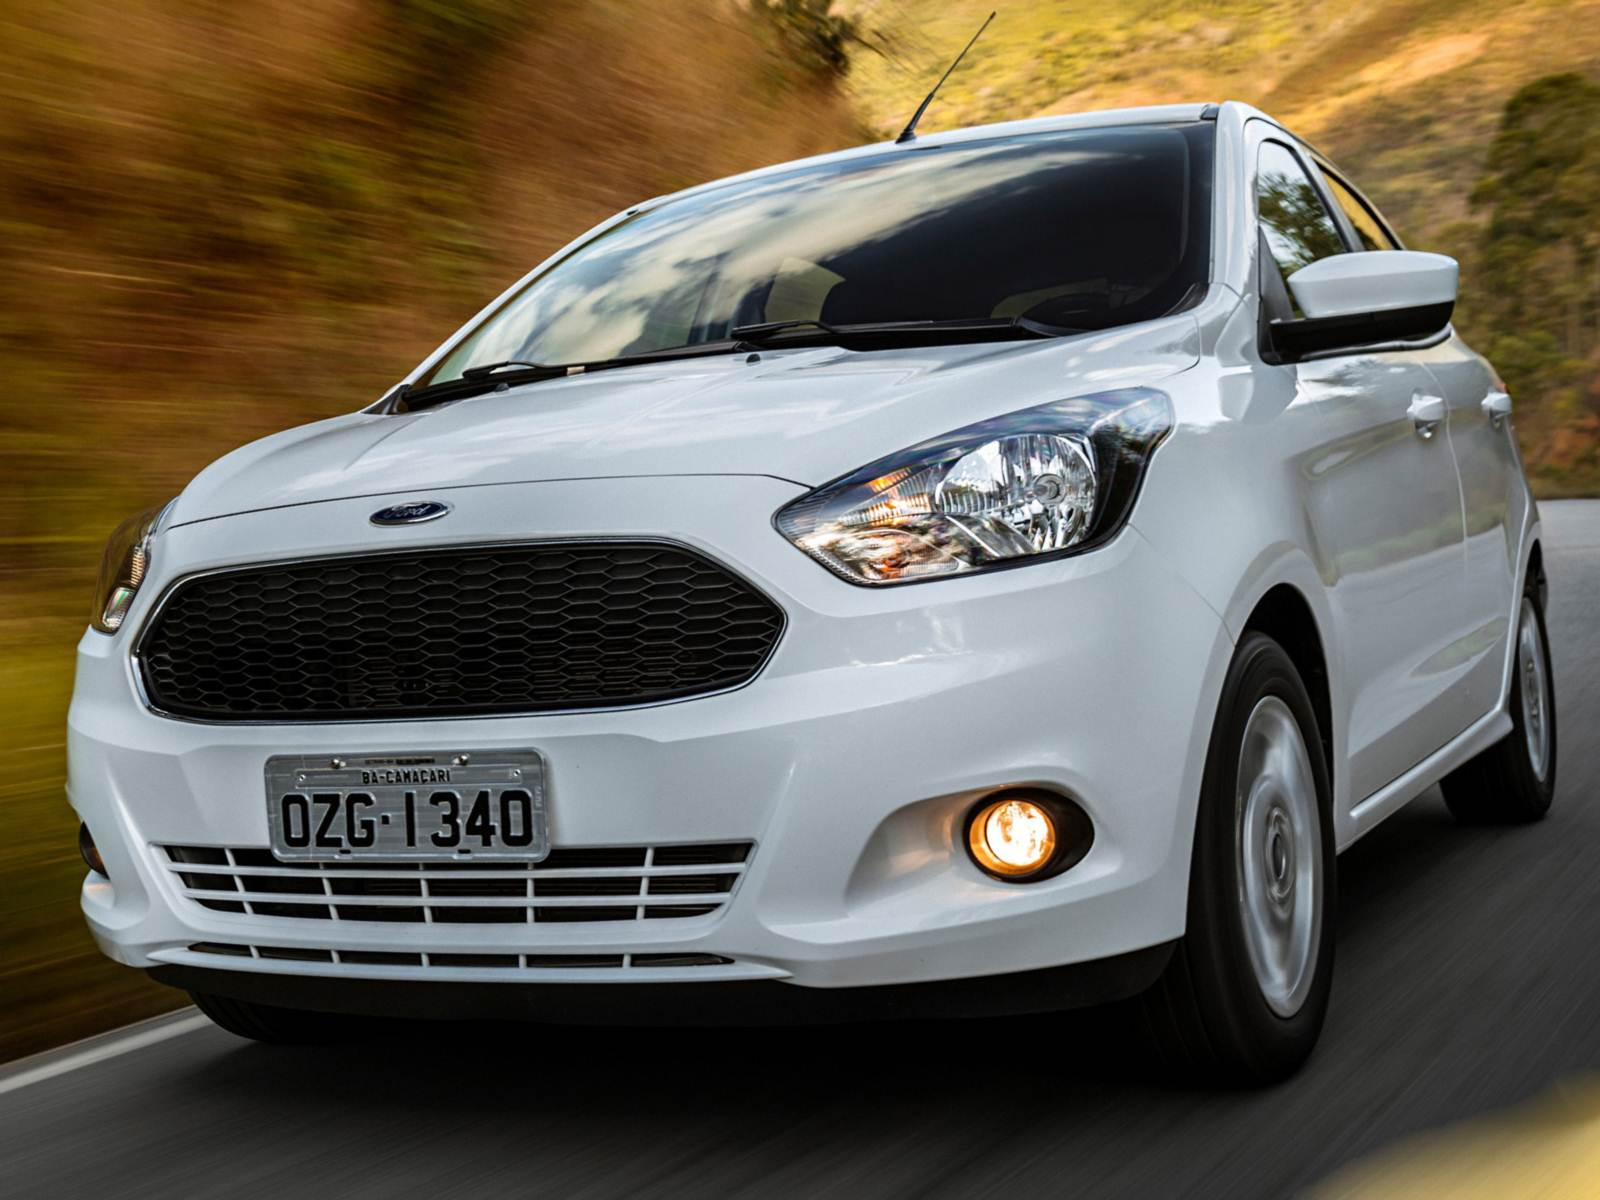 novo ford ka impress es ao dirigir de um propriet rio de up car blog br. Black Bedroom Furniture Sets. Home Design Ideas